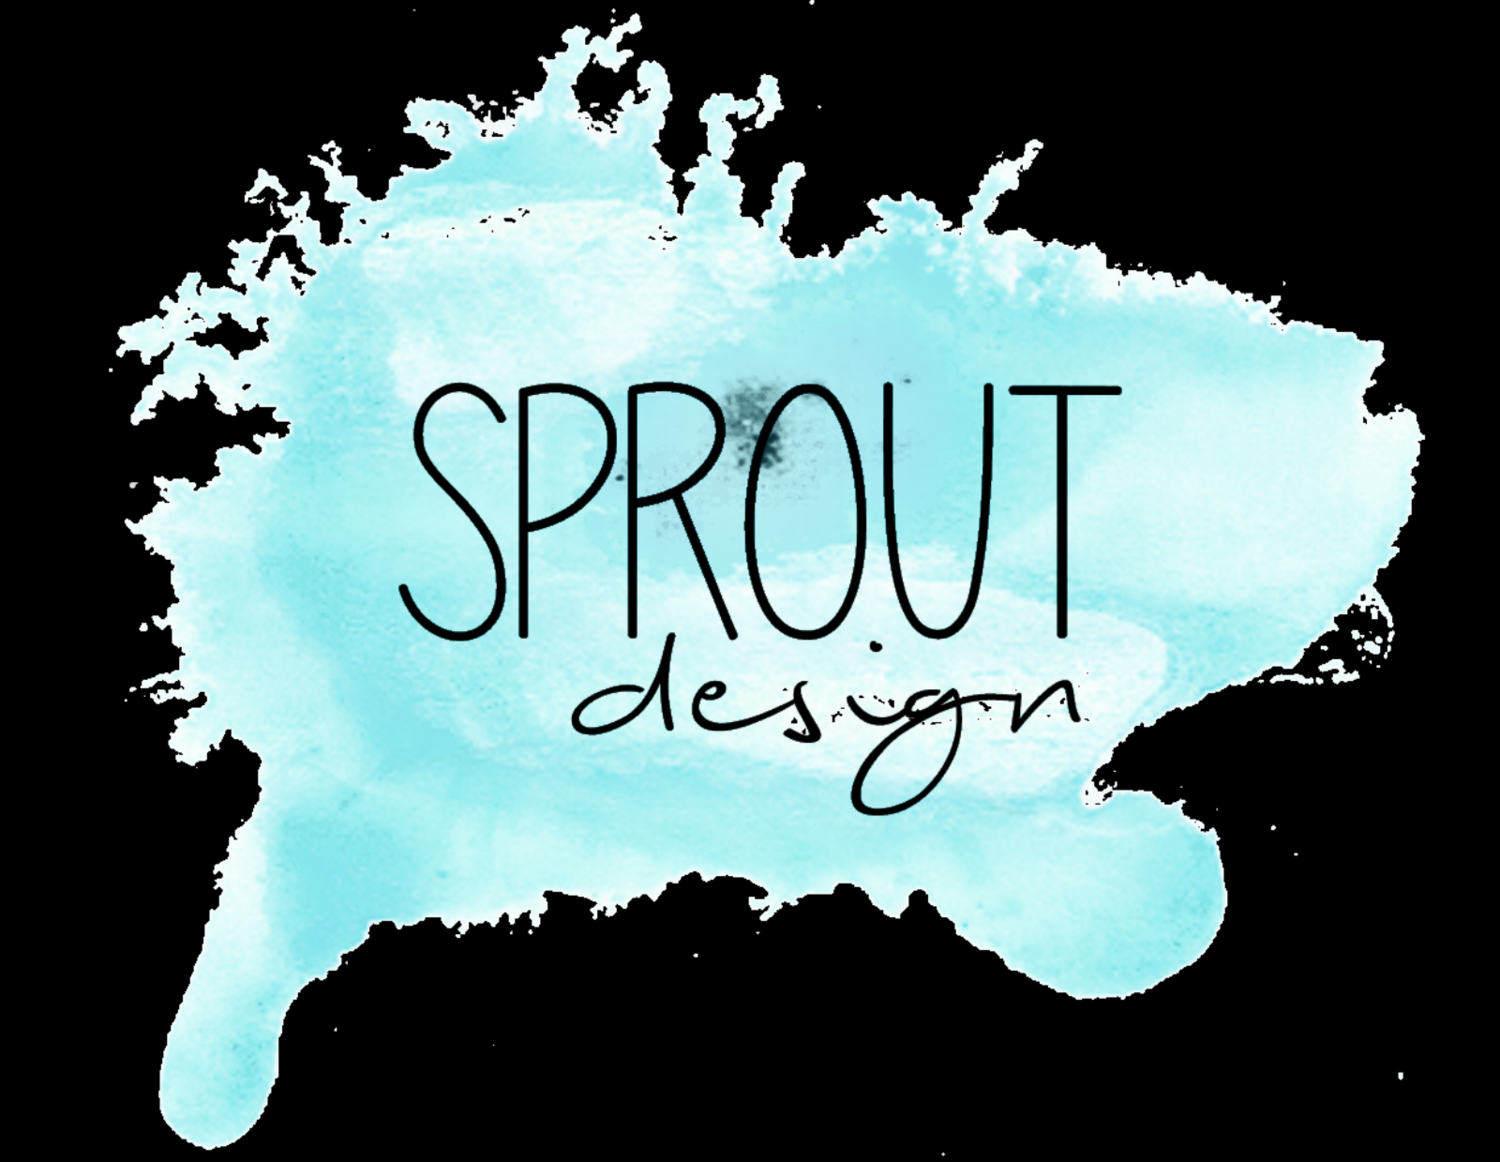 Sprout Design